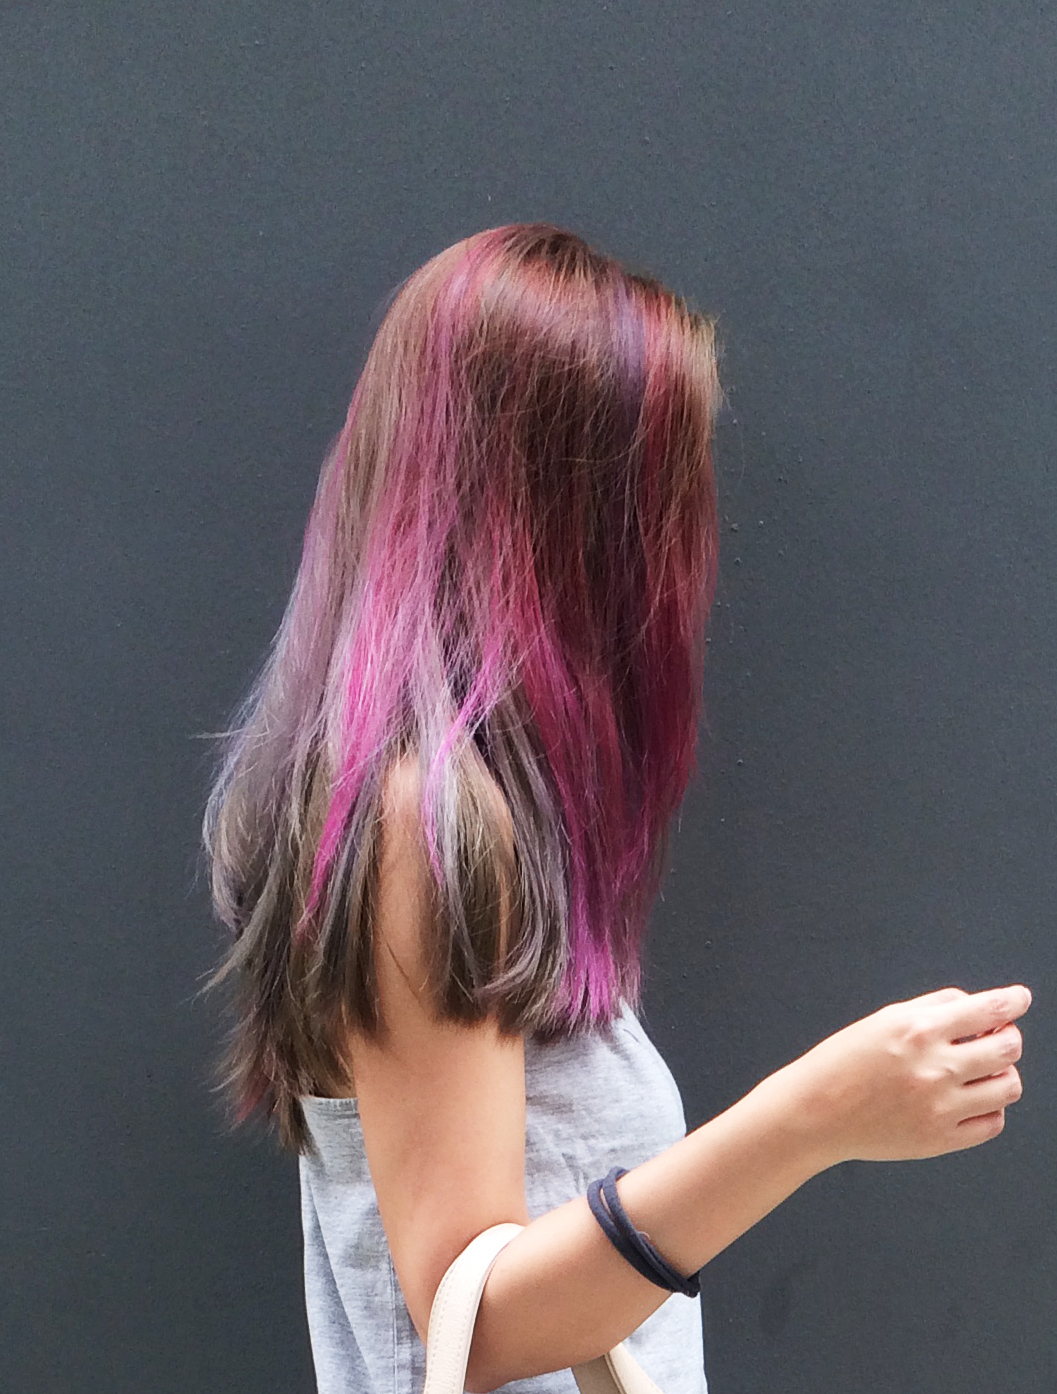 Purple Hair - The Skinny Scout